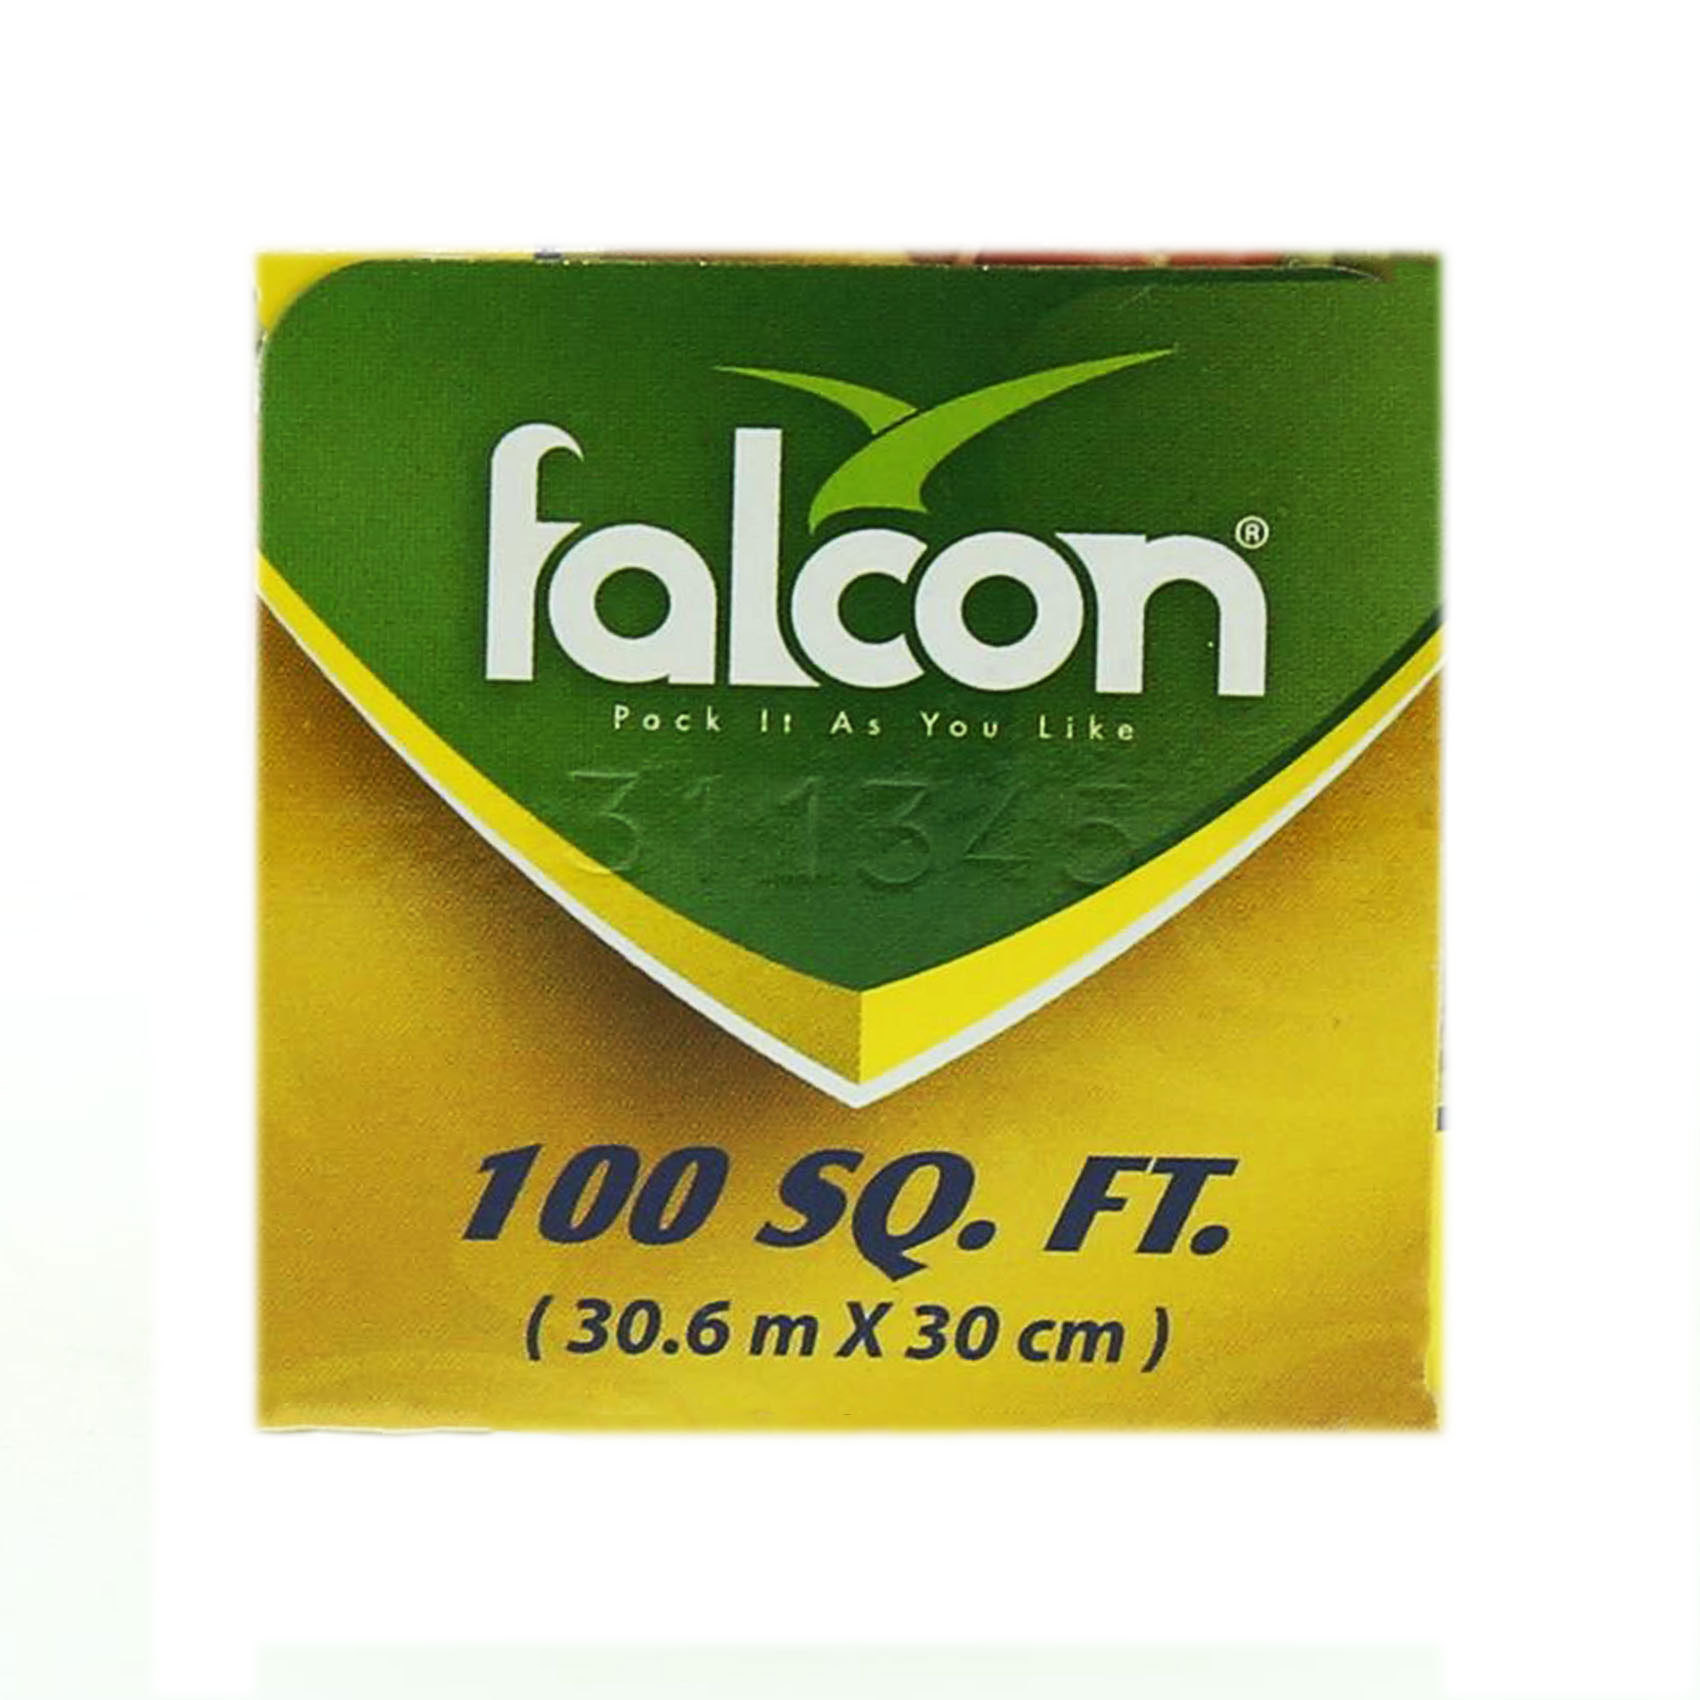 FALCON CLING FILM 100 FT